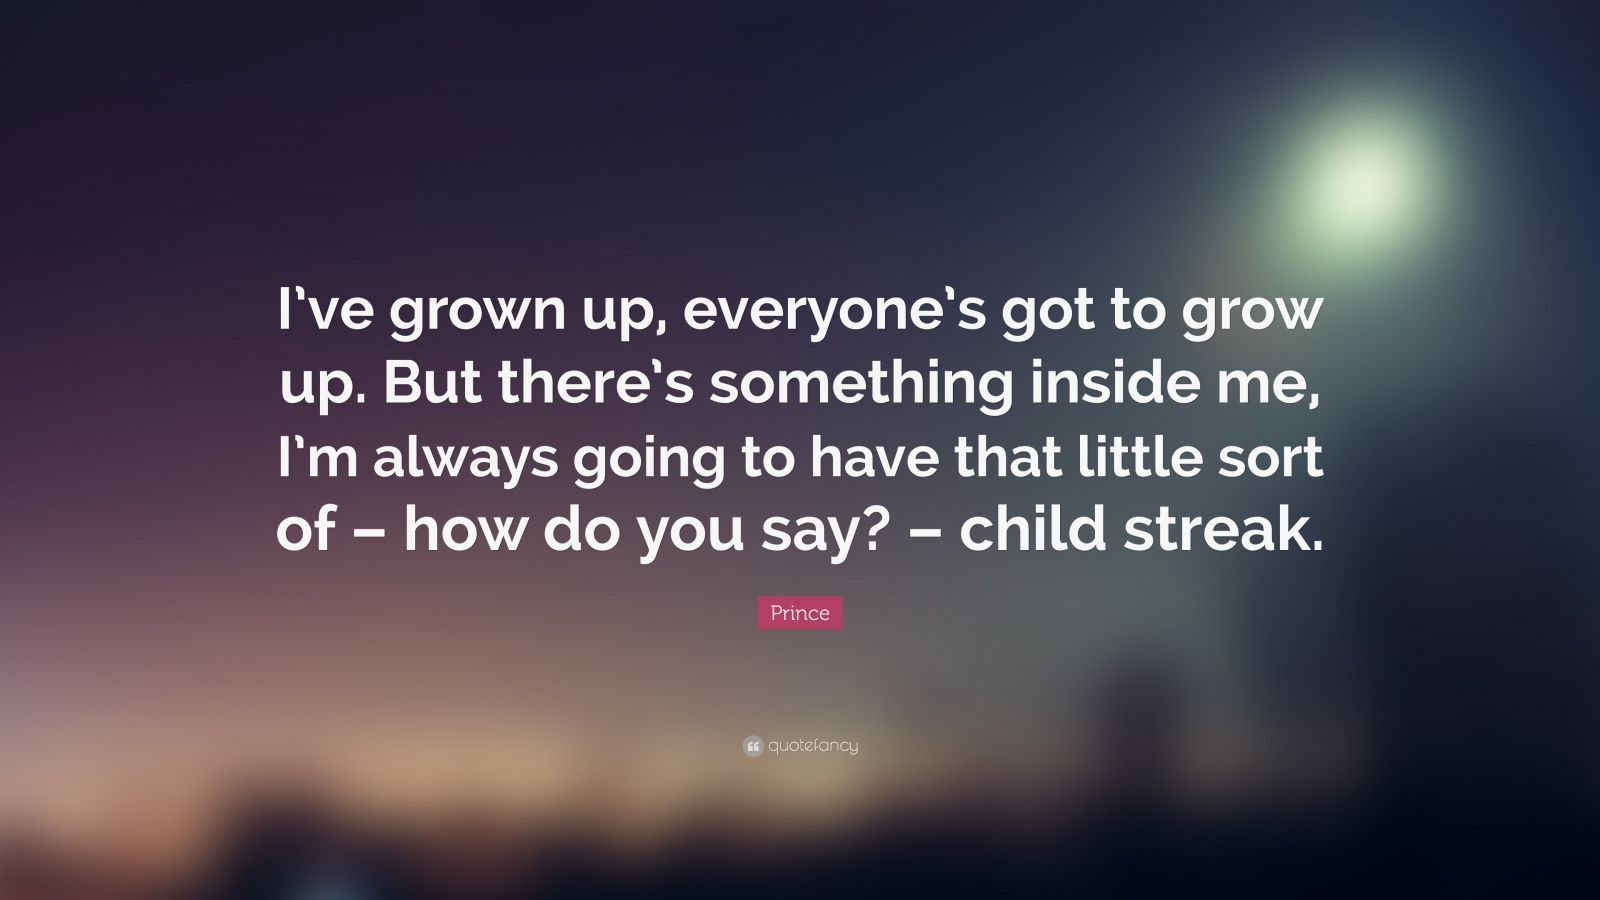 """Prince Quote: """"I've grown up, everyone's got to grow up. But there's something inside me, I'm always going to have that little sort of – how do you say? – child streak."""""""